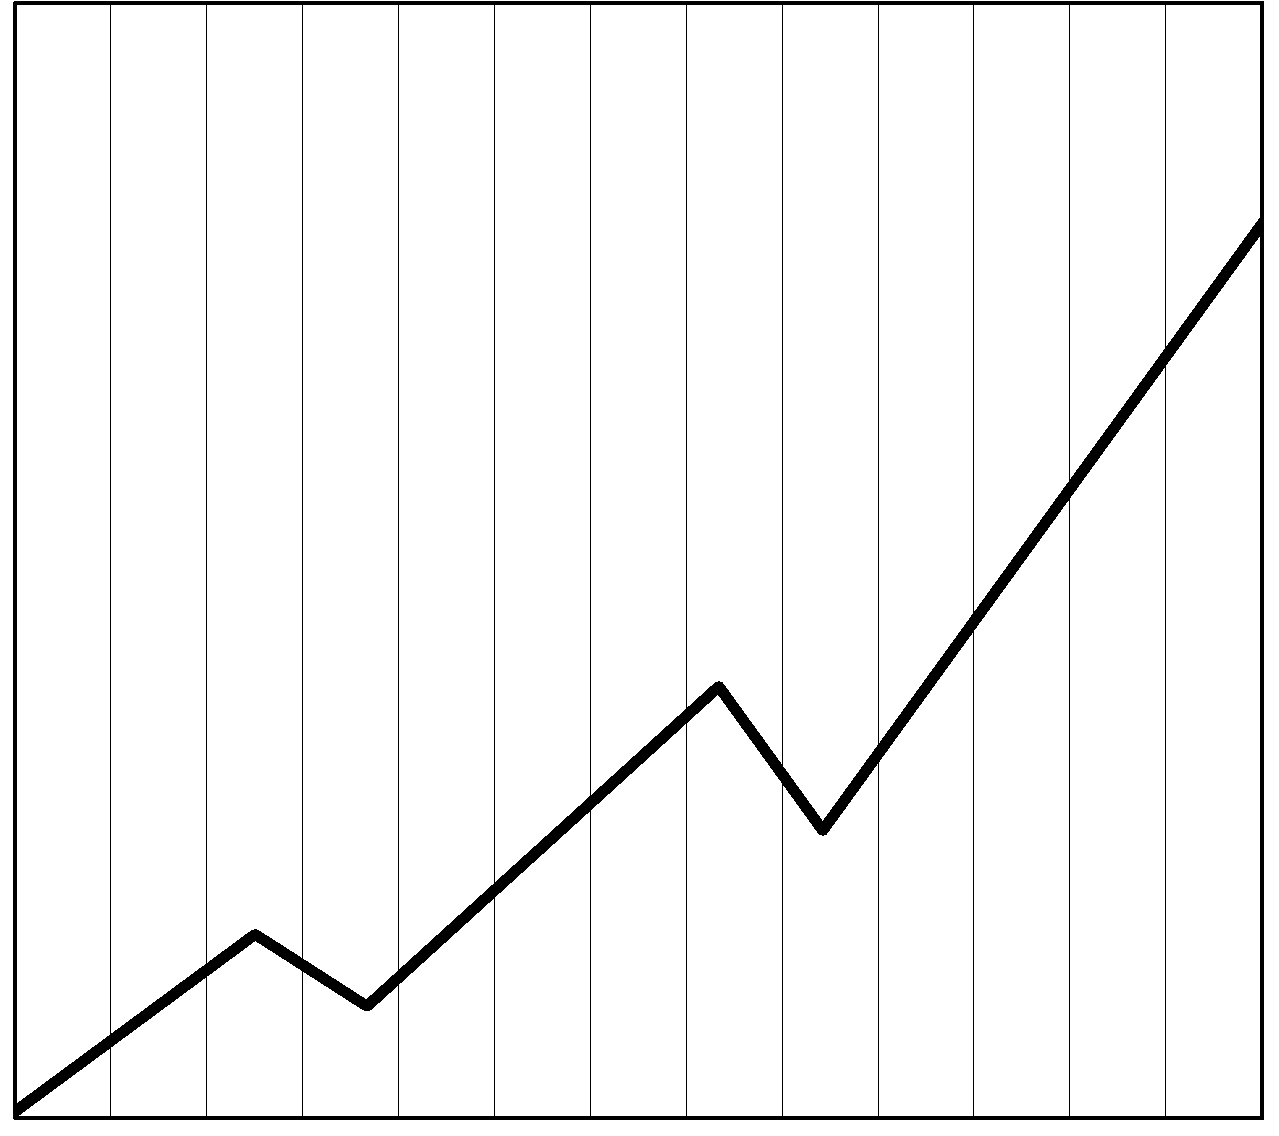 Graph outline png. Blank line c ile